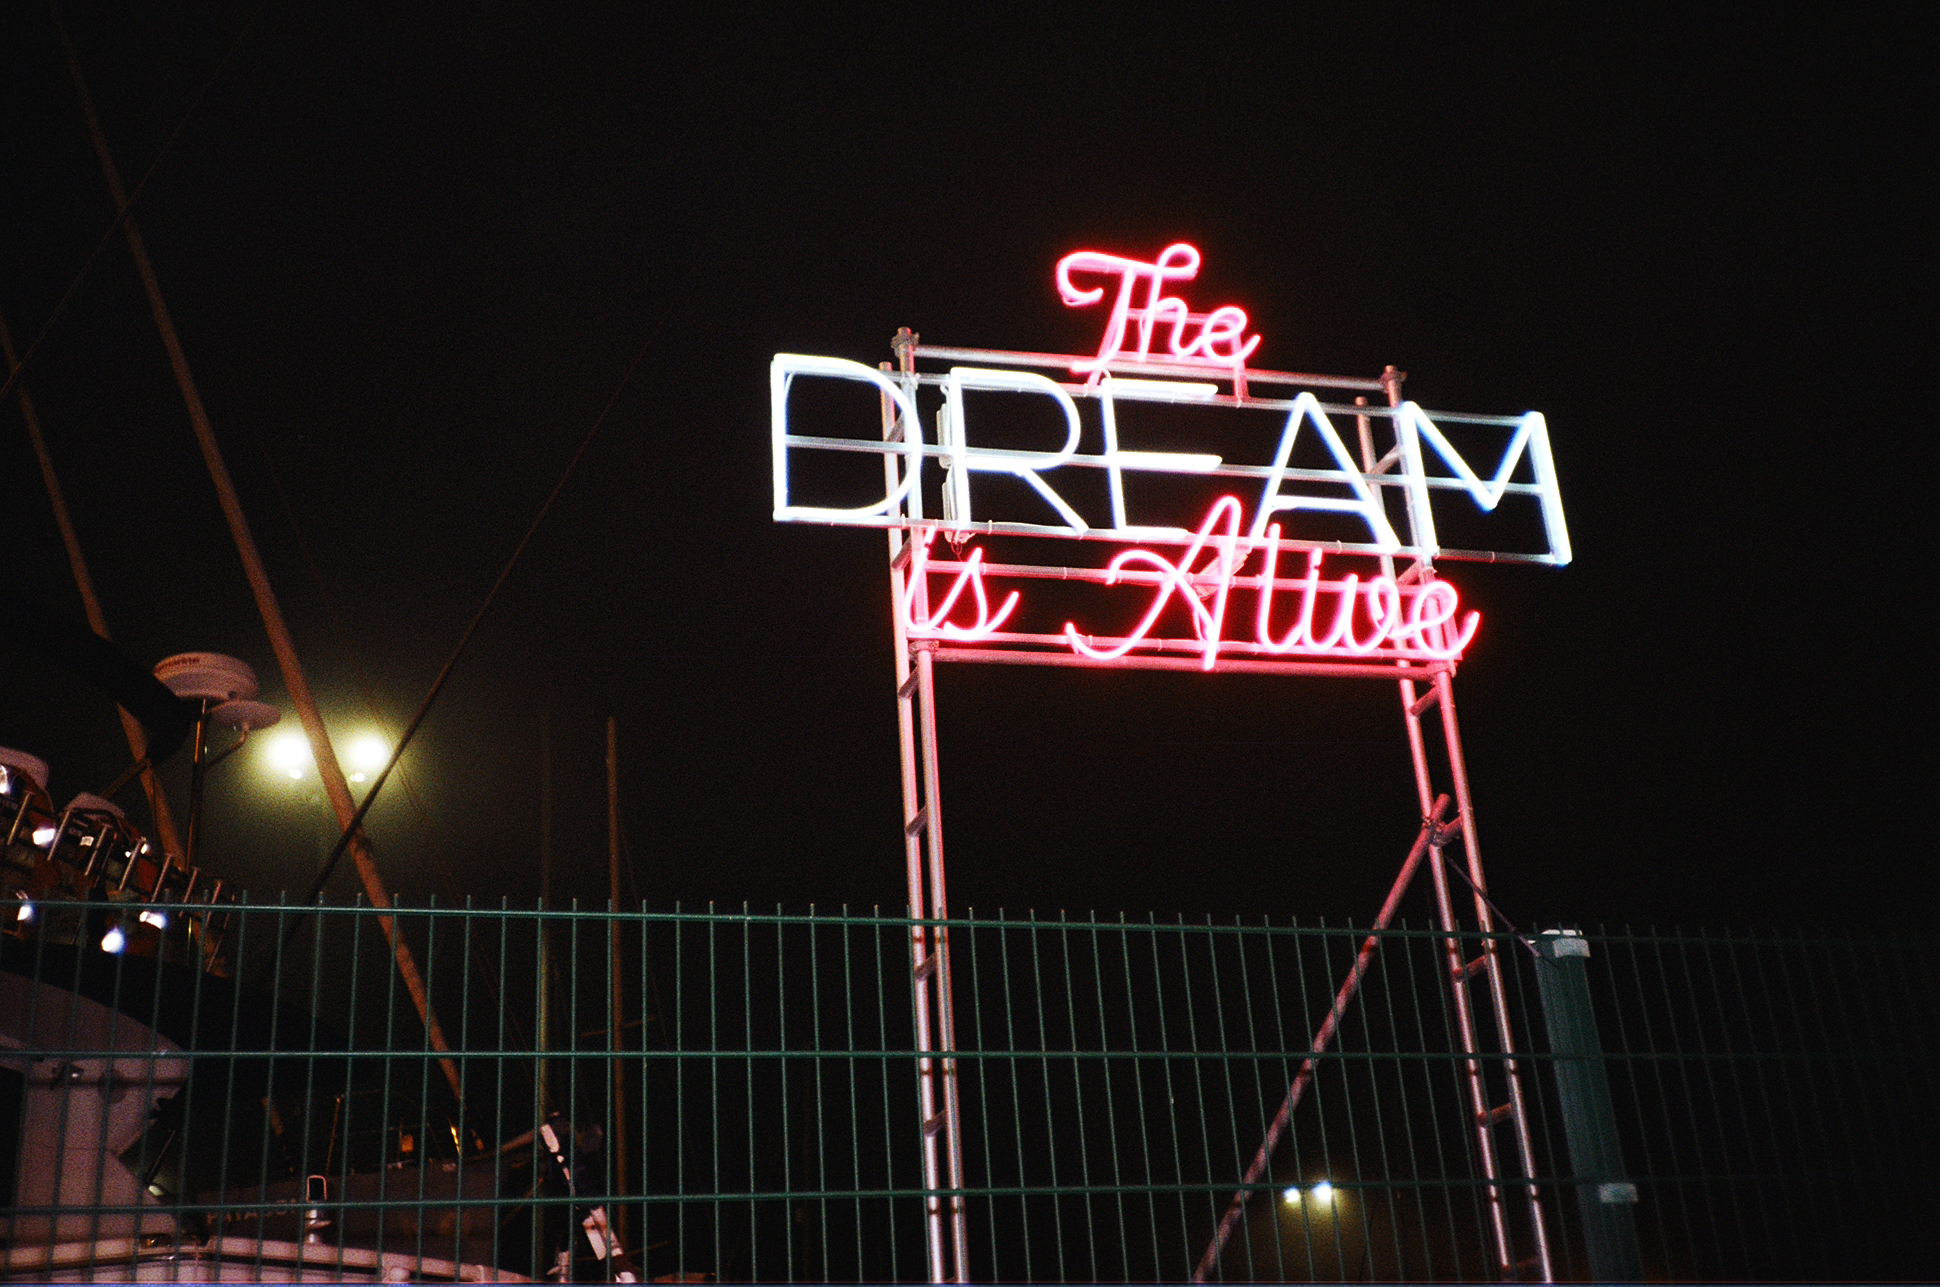 The Dream is alive neon sign on 35mm film diary in Nos Alive festival by London based photographer Ailera Stone